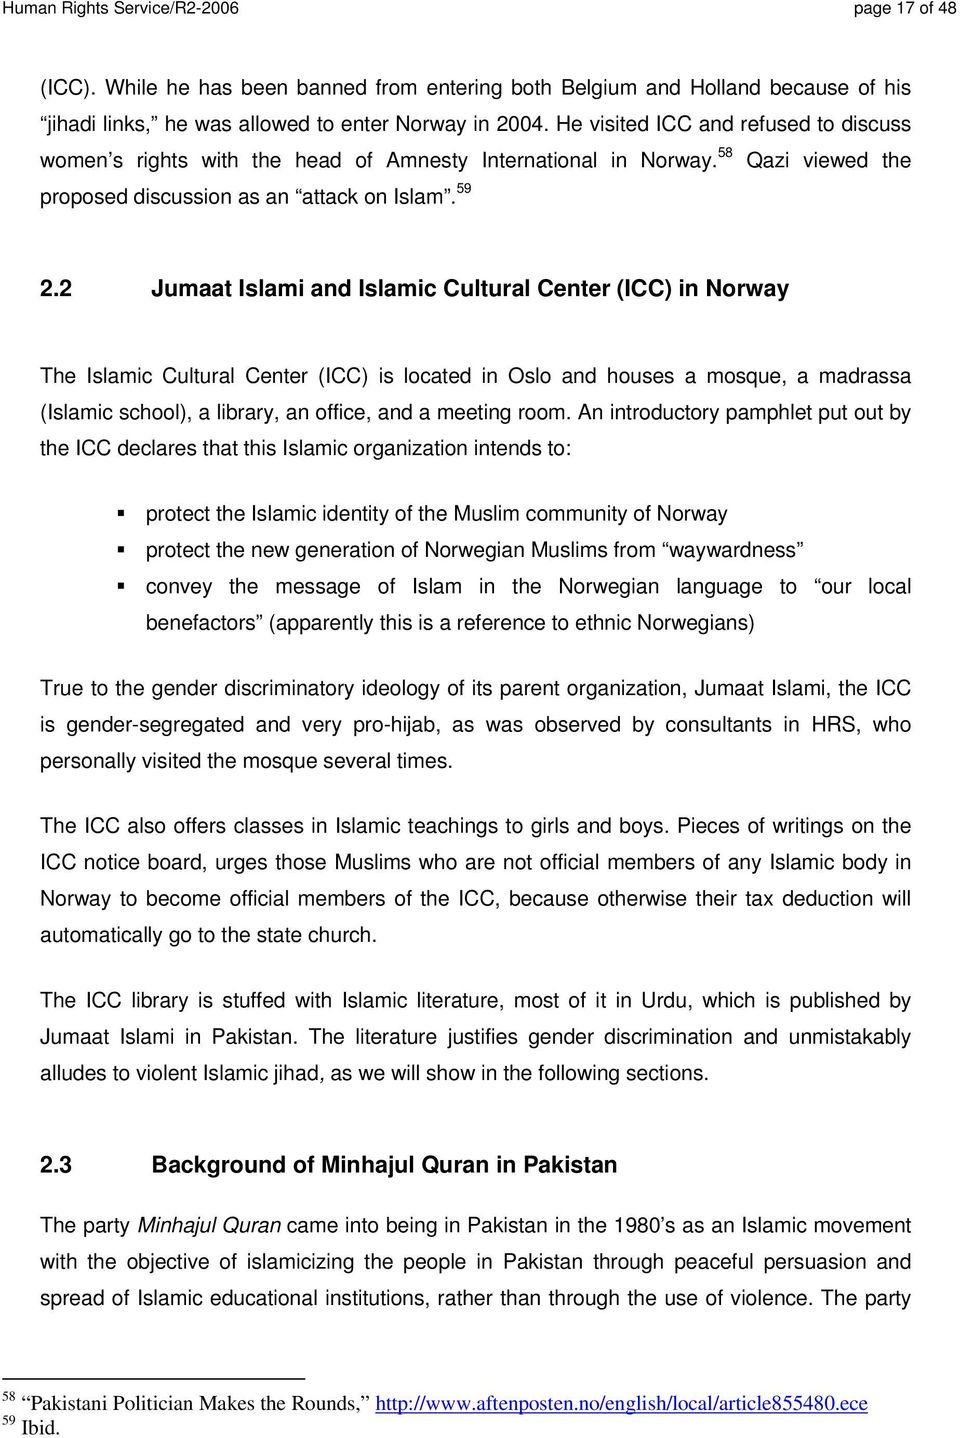 2 Jumaat Islami and Islamic Cultural Center (ICC) in Norway The Islamic Cultural Center (ICC) is located in Oslo and houses a mosque, a madrassa (Islamic school), a library, an office, and a meeting